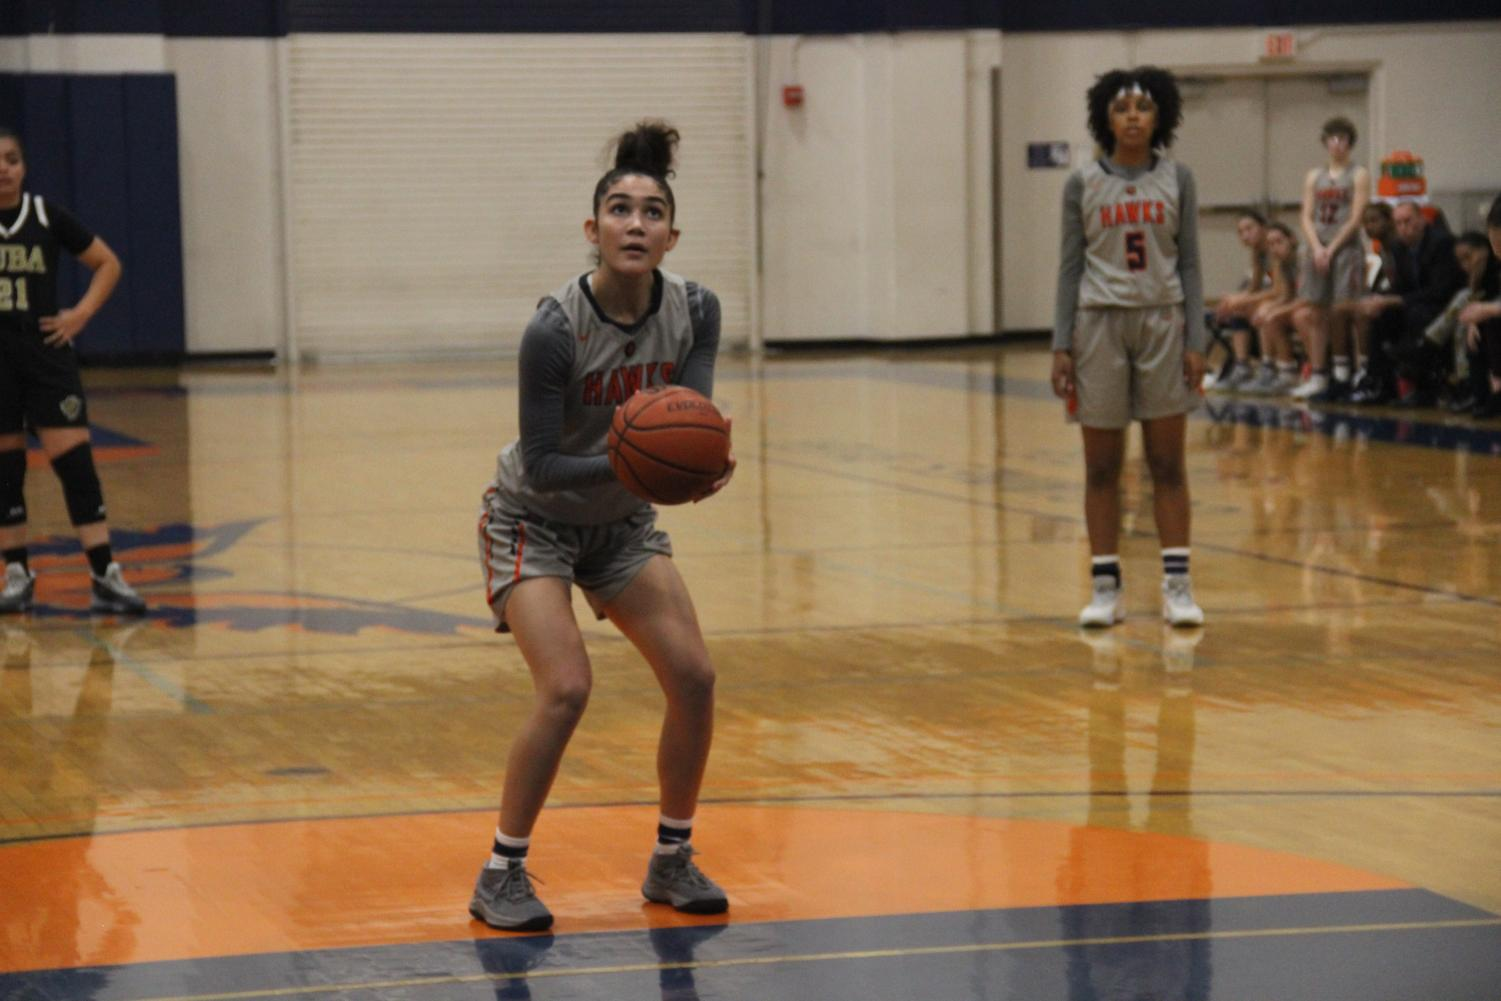 Sophomore guard Arionna Butts gets ready to throw a free throw from the goal line during their game with Yuba College 49ers. The game, which took place on Tuesday, resulted in a 3-6 loss for the Hawks.